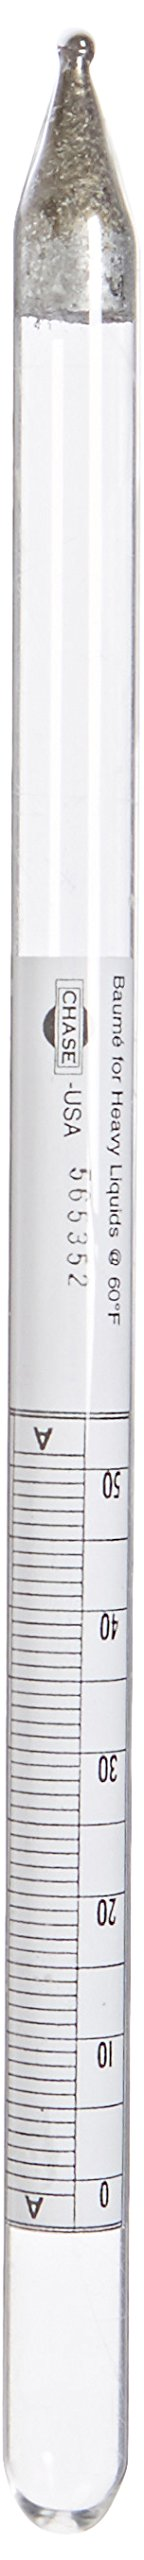 Chase Instruments BH13 Baume Precision Hydrometer, 0 to 50 Range, 0.10mm Interval, 300mm Length